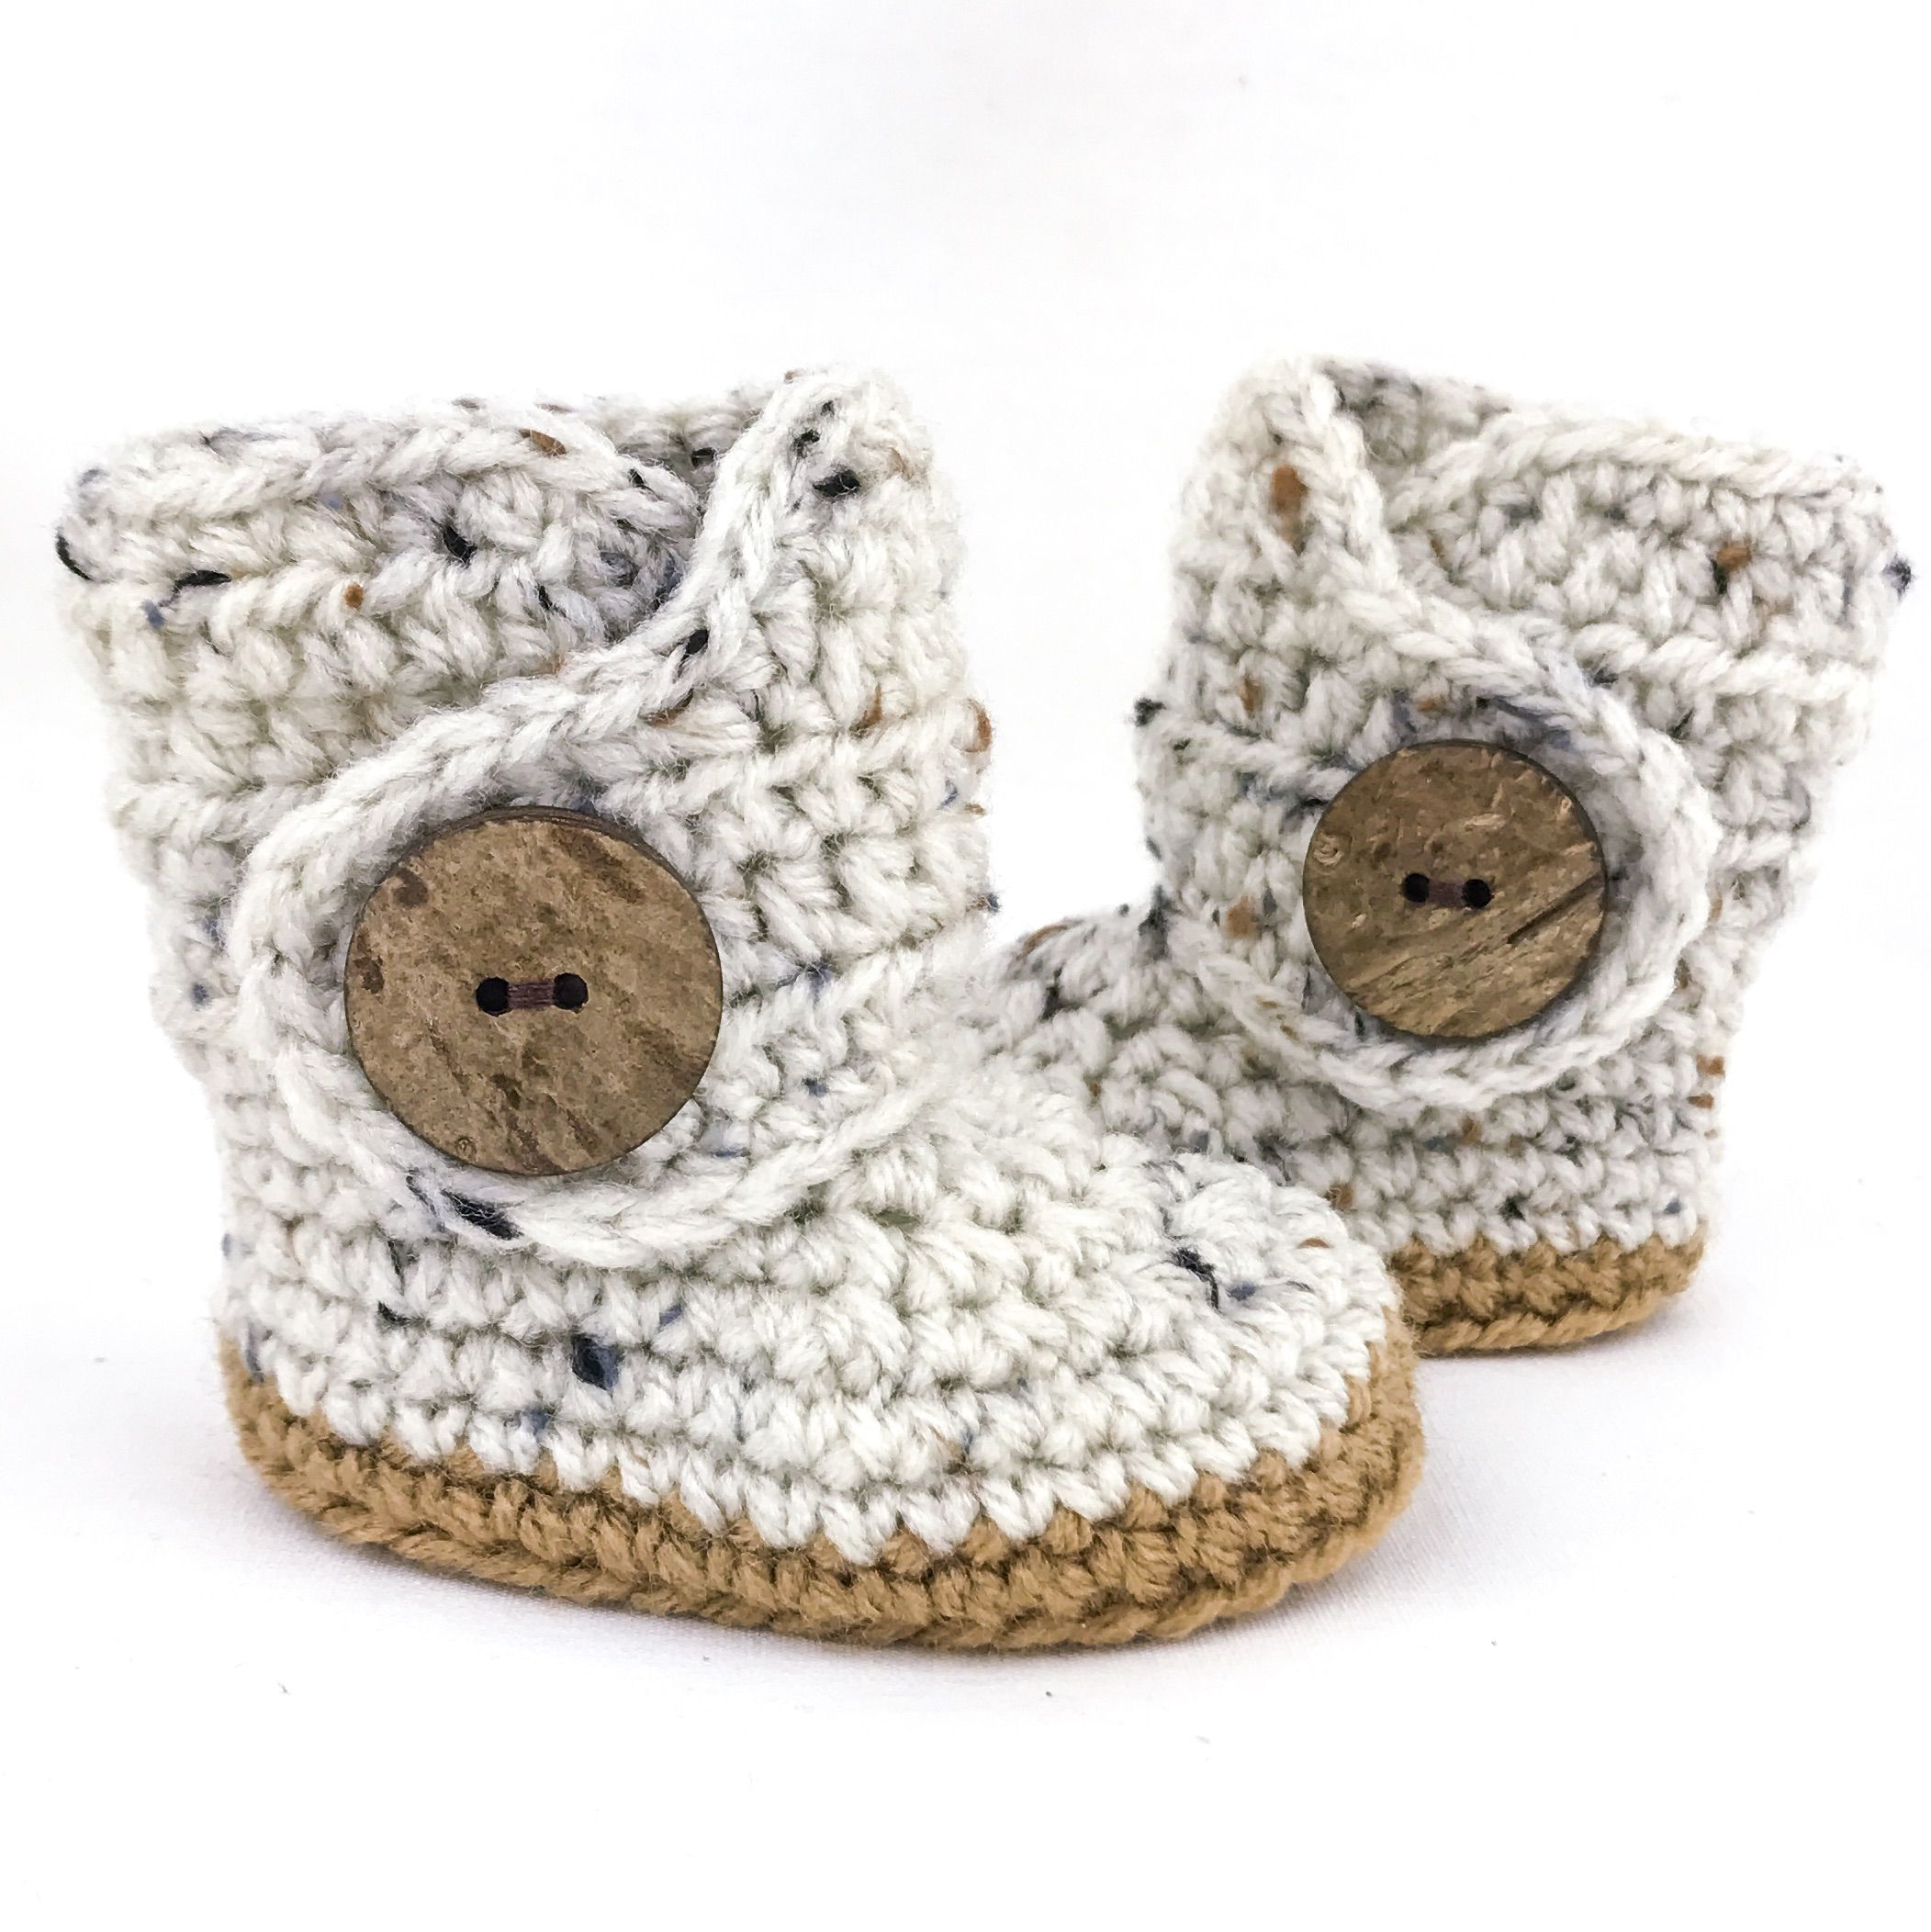 Oats and Honey Gender neutral baby shoes tweed baby boots soft